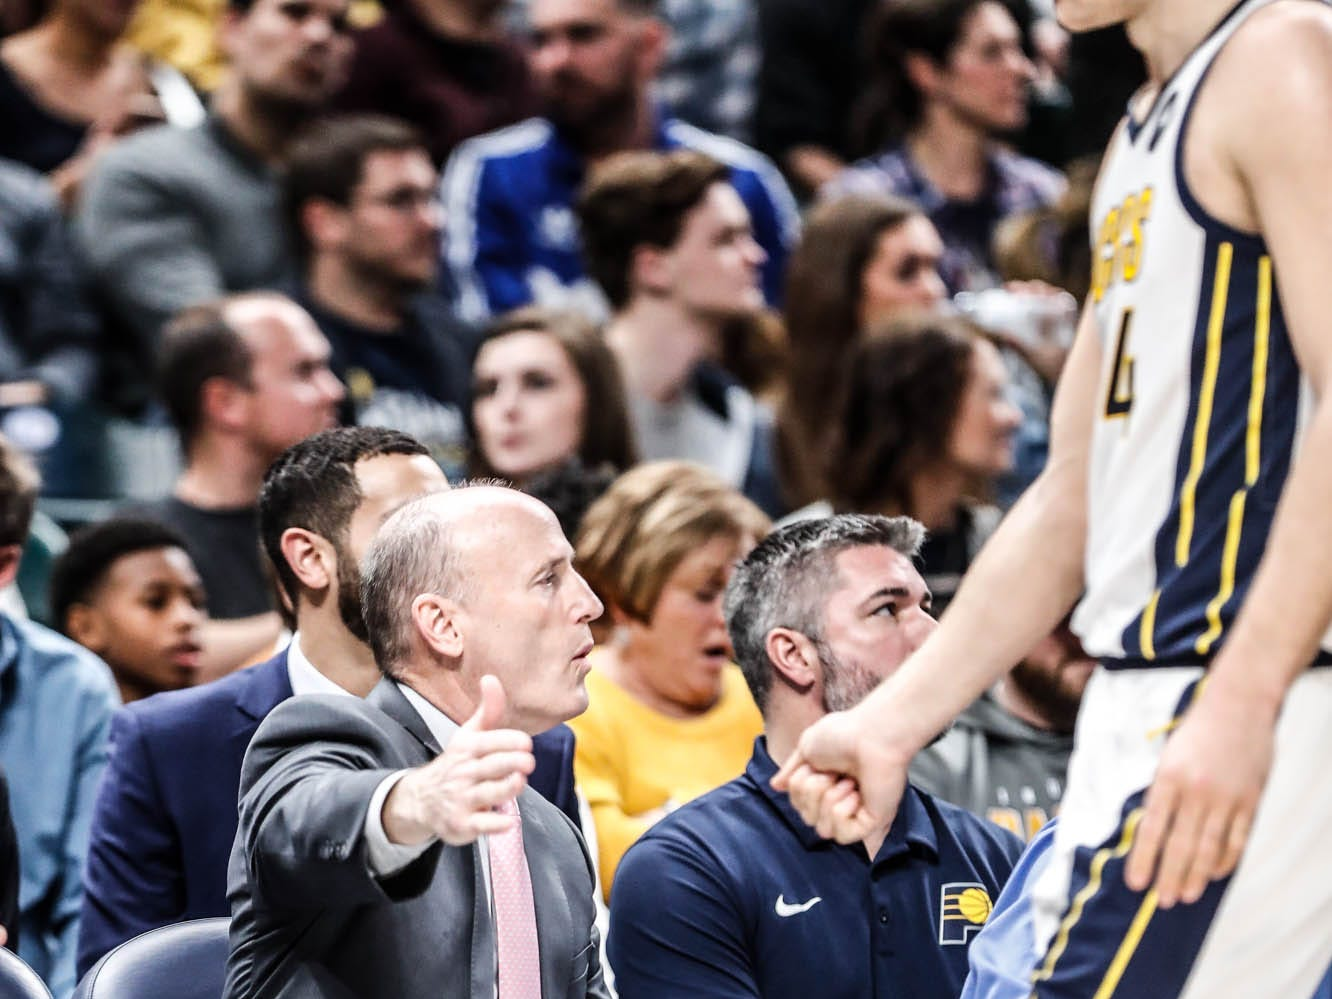 Pacers Assistant Coach Dan Burke side fives Indiana Pacer's forward Bojan Bogdanovic (44), on his way back to the bench during a game between the Indiana Pacers and the Detroit Pistons at at Bankers Life Fieldhouse in Indianapolis on Friday, Dec. 28, 2018.